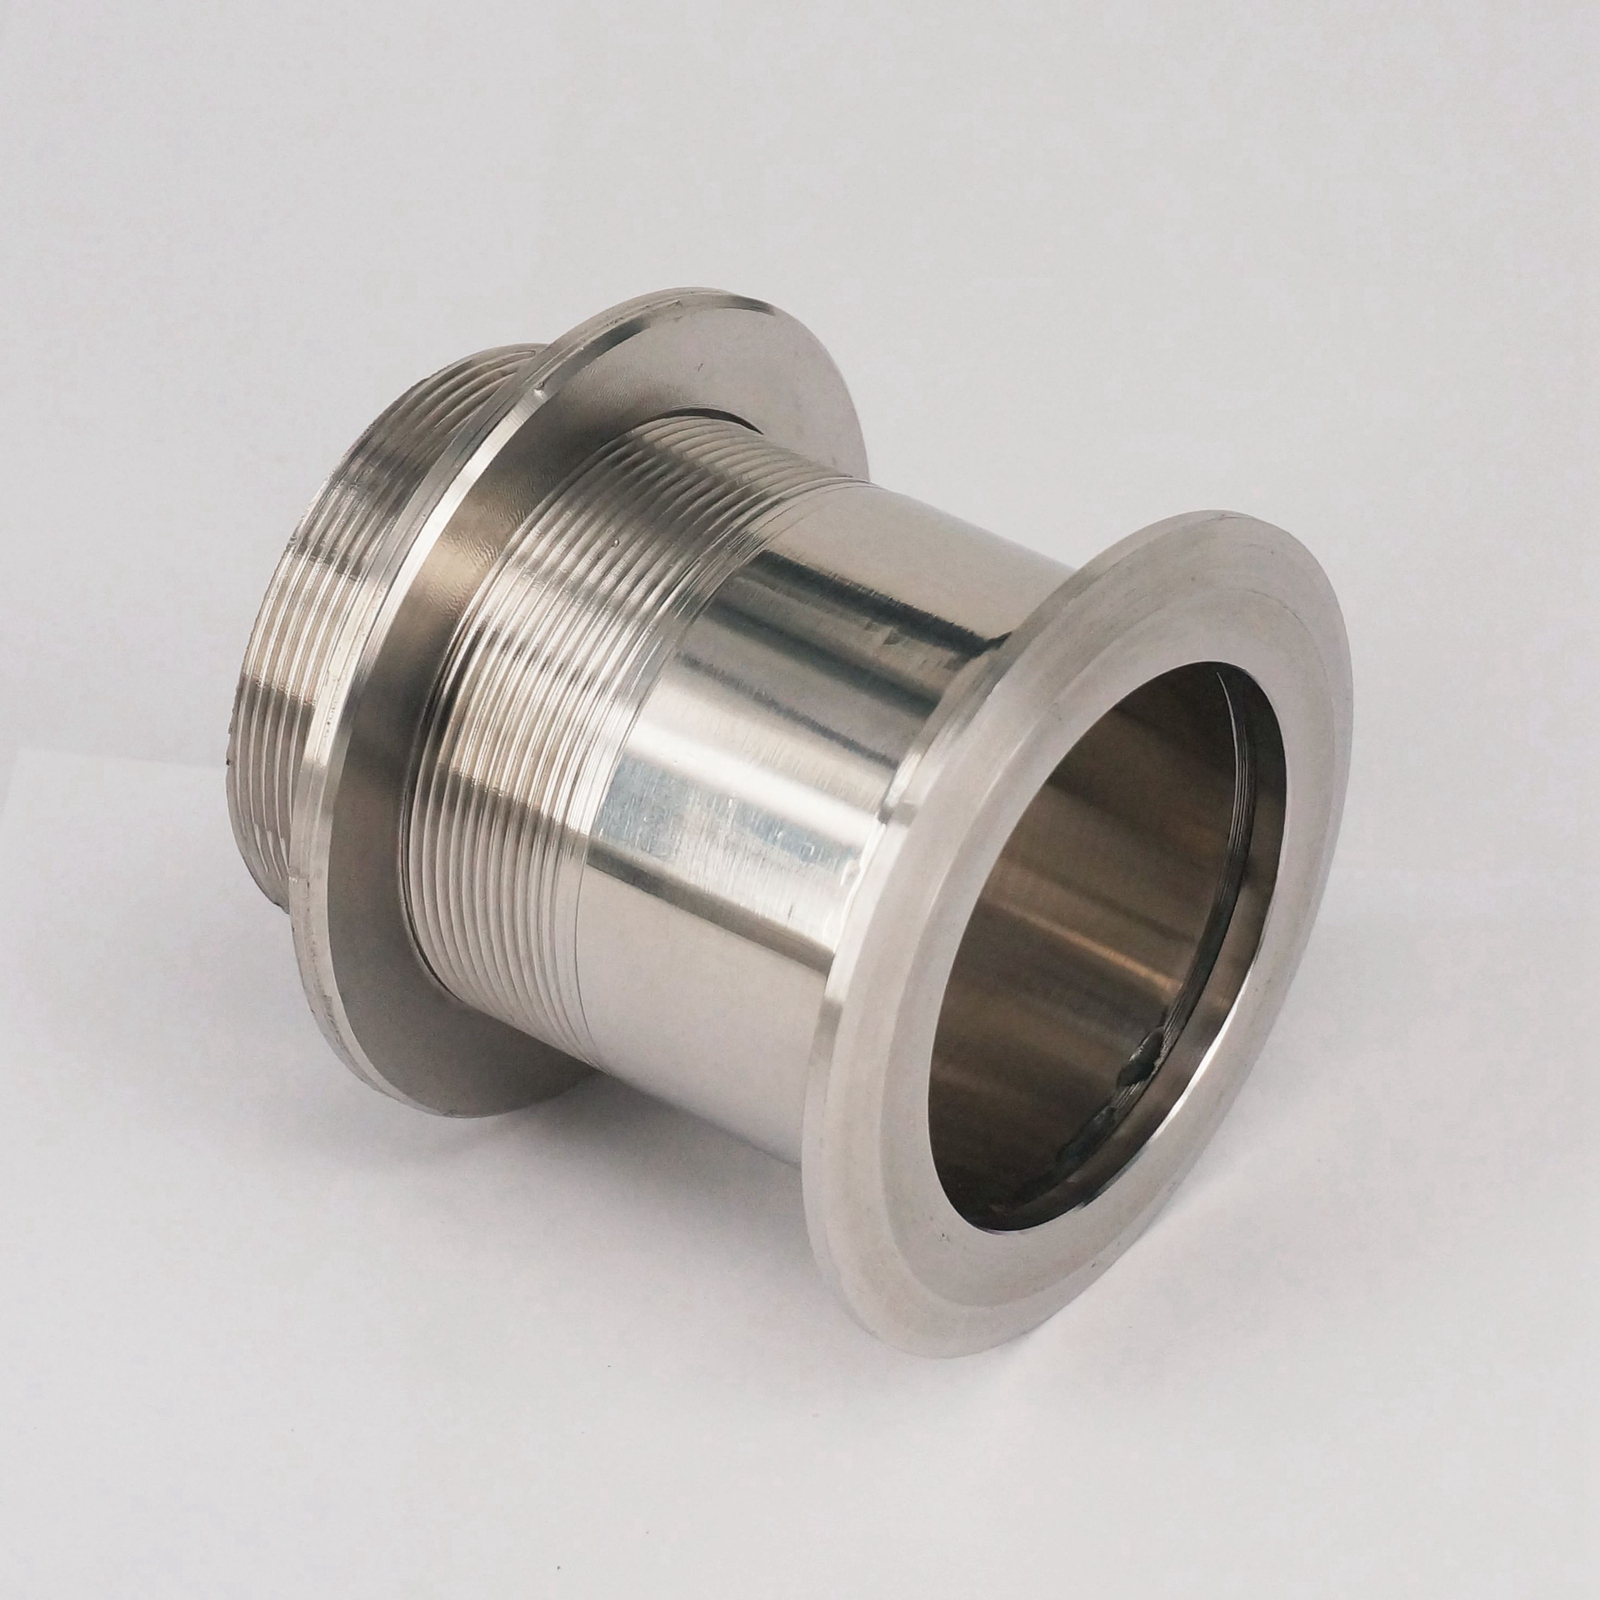 Fit Tube O/D 51mm 304 Stainless Steel Sanitary Bulkhead Pipe Fitting for tube free shipping 10pcs 1 4 tube x 1 4 tube 304 stainless steel bulkhead union compression fitting connector